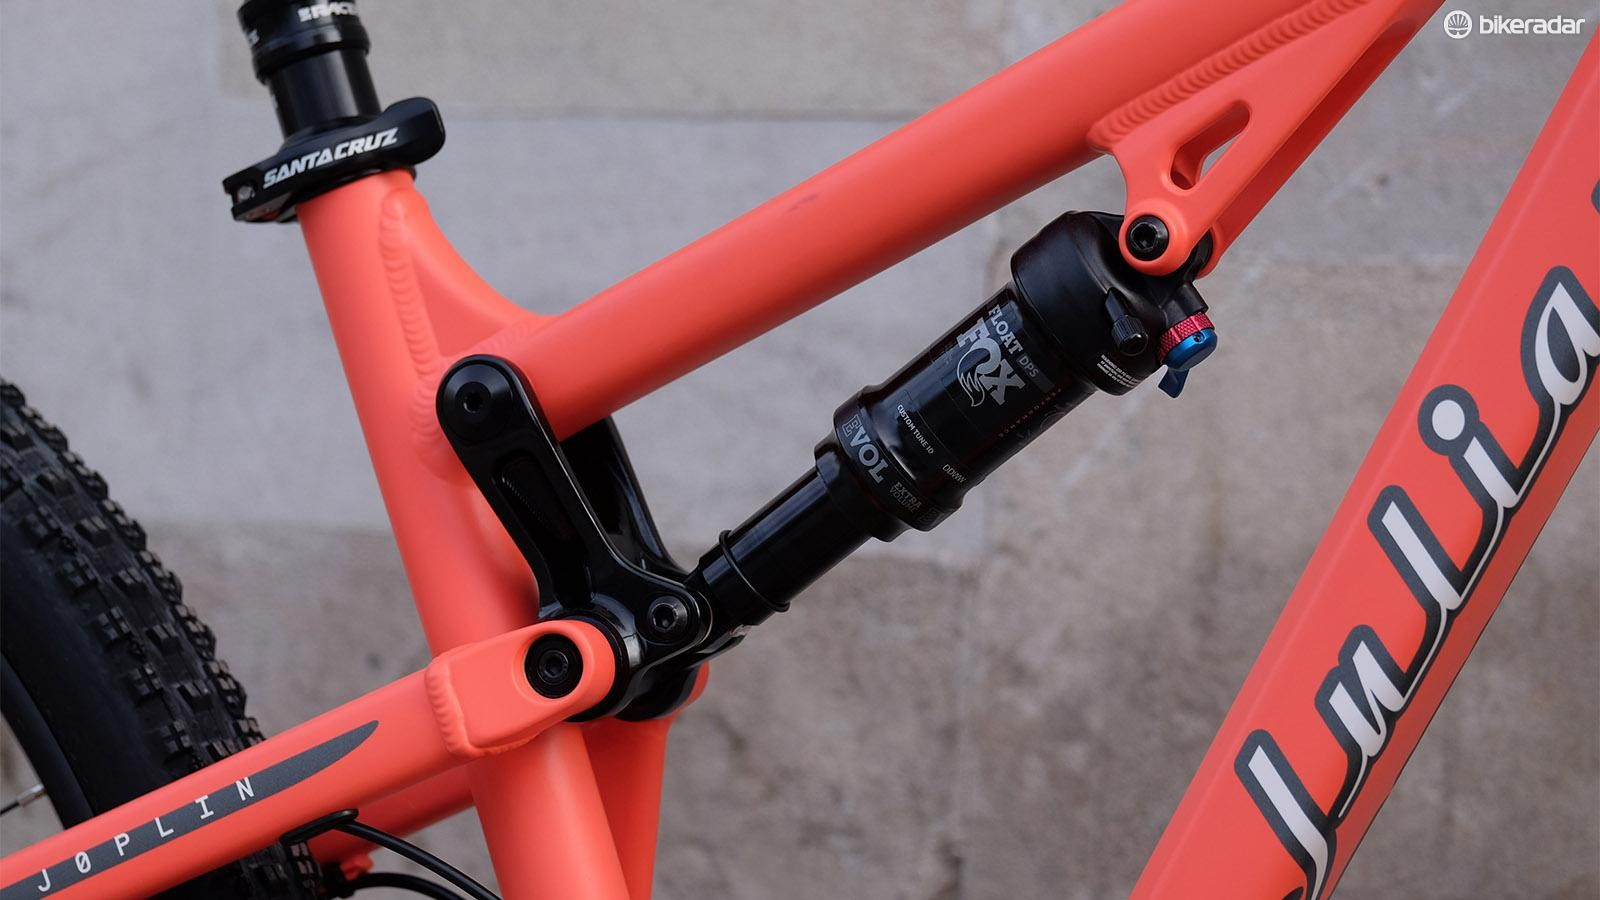 The Fox Float Performance DPS shock controls the frame's 110mm travel